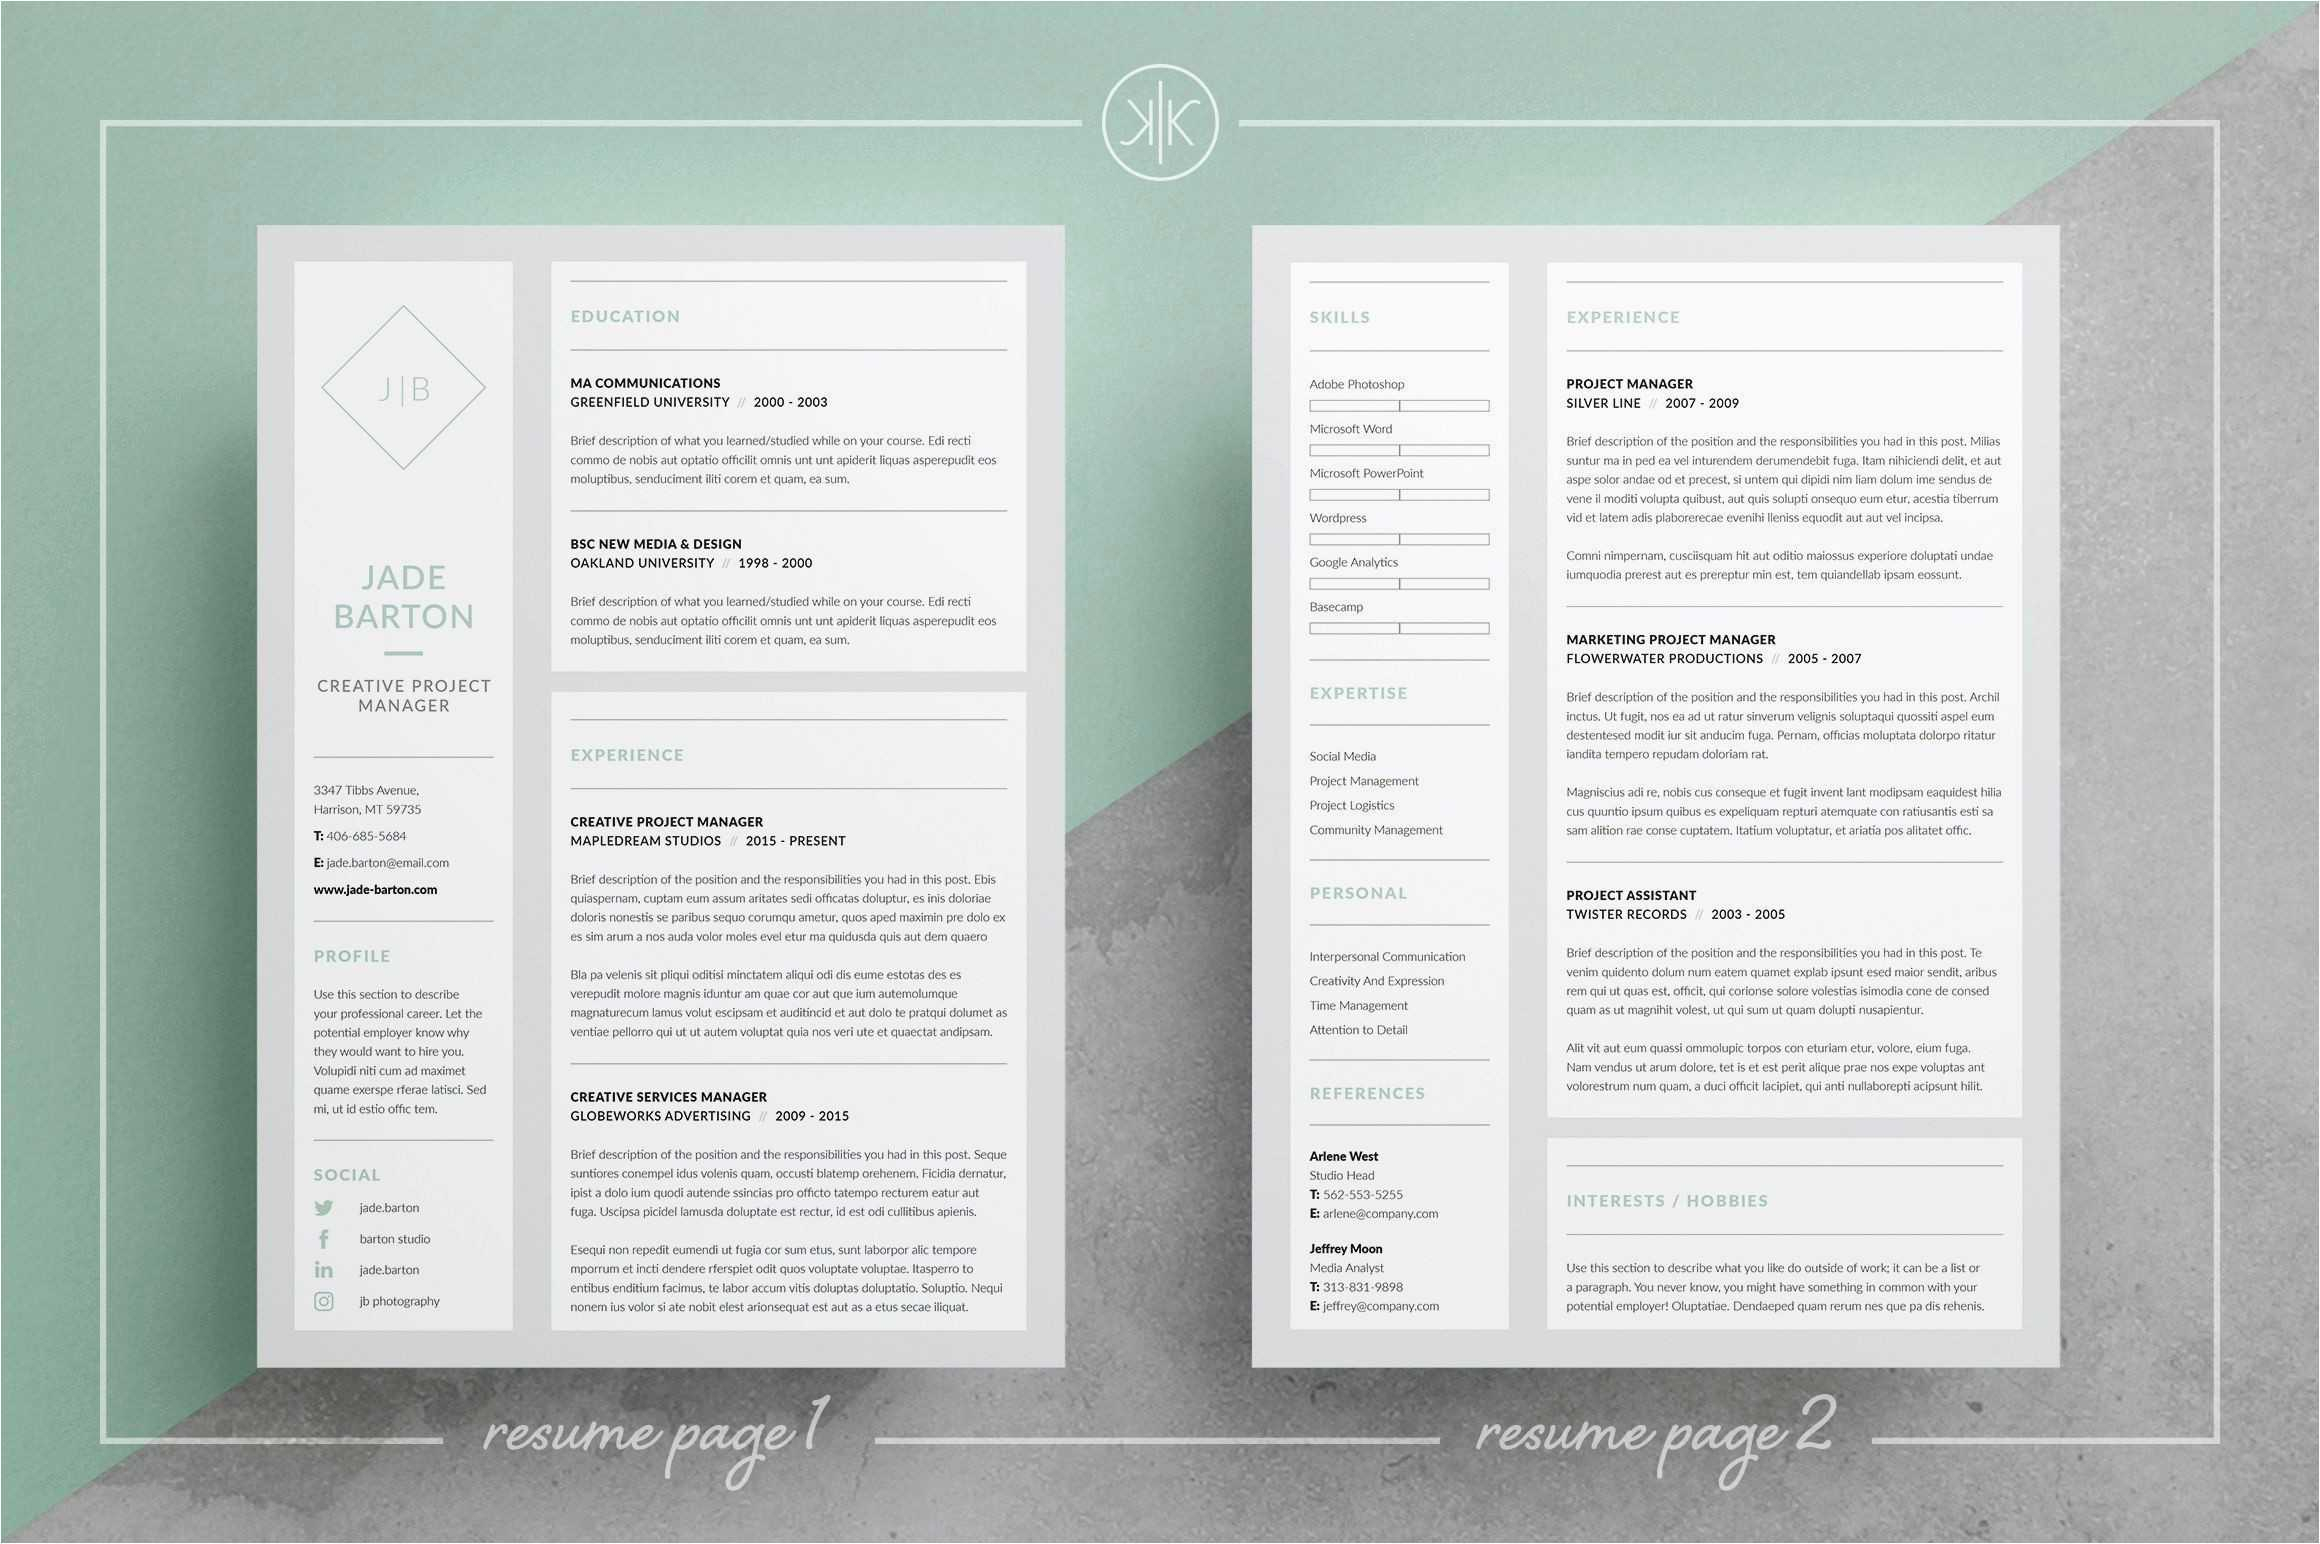 Help Making A Resume for Free - 20 Best Resume Help Free Gallery